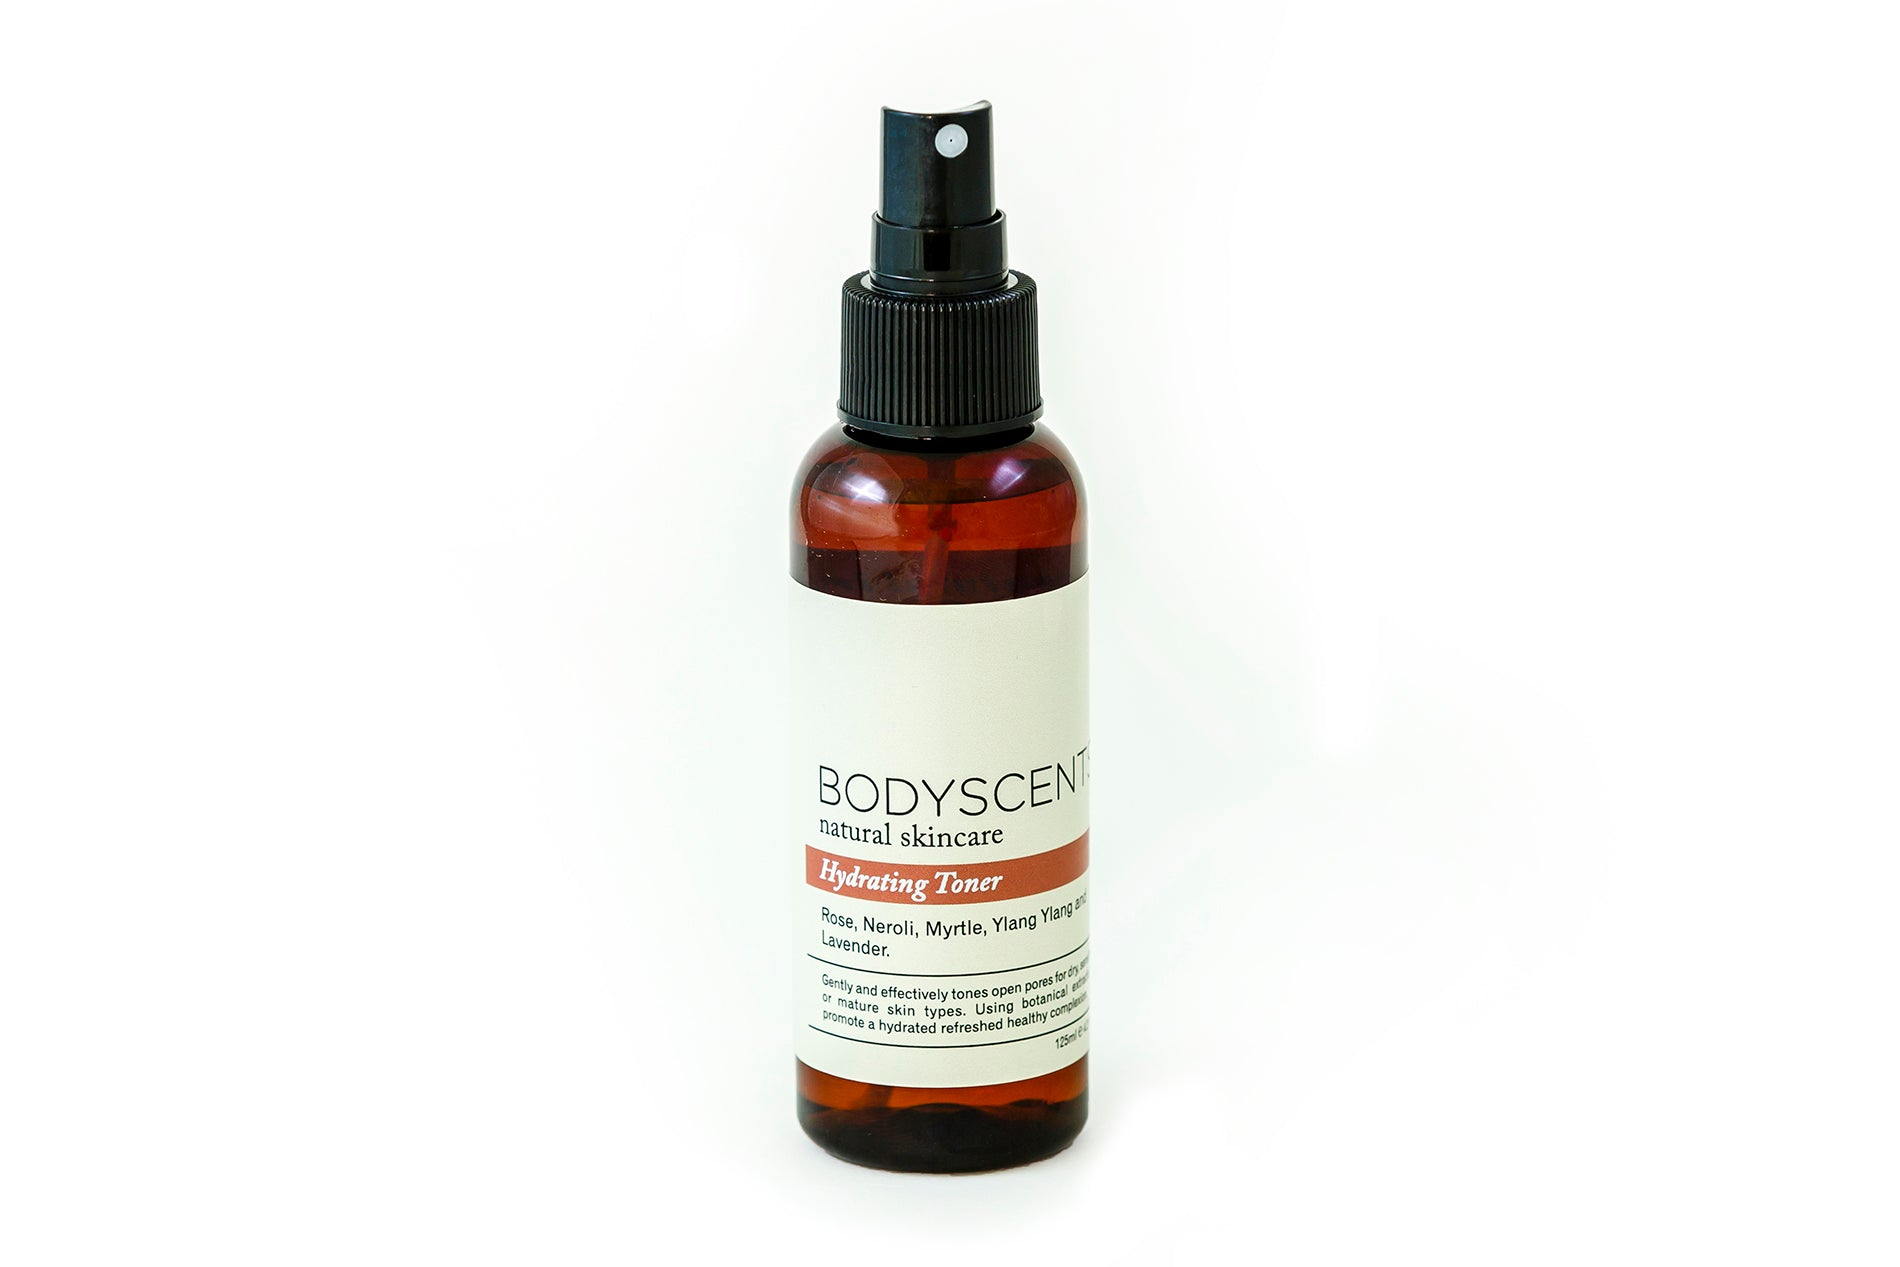 Hydrating Facial Toner - Bodyscents